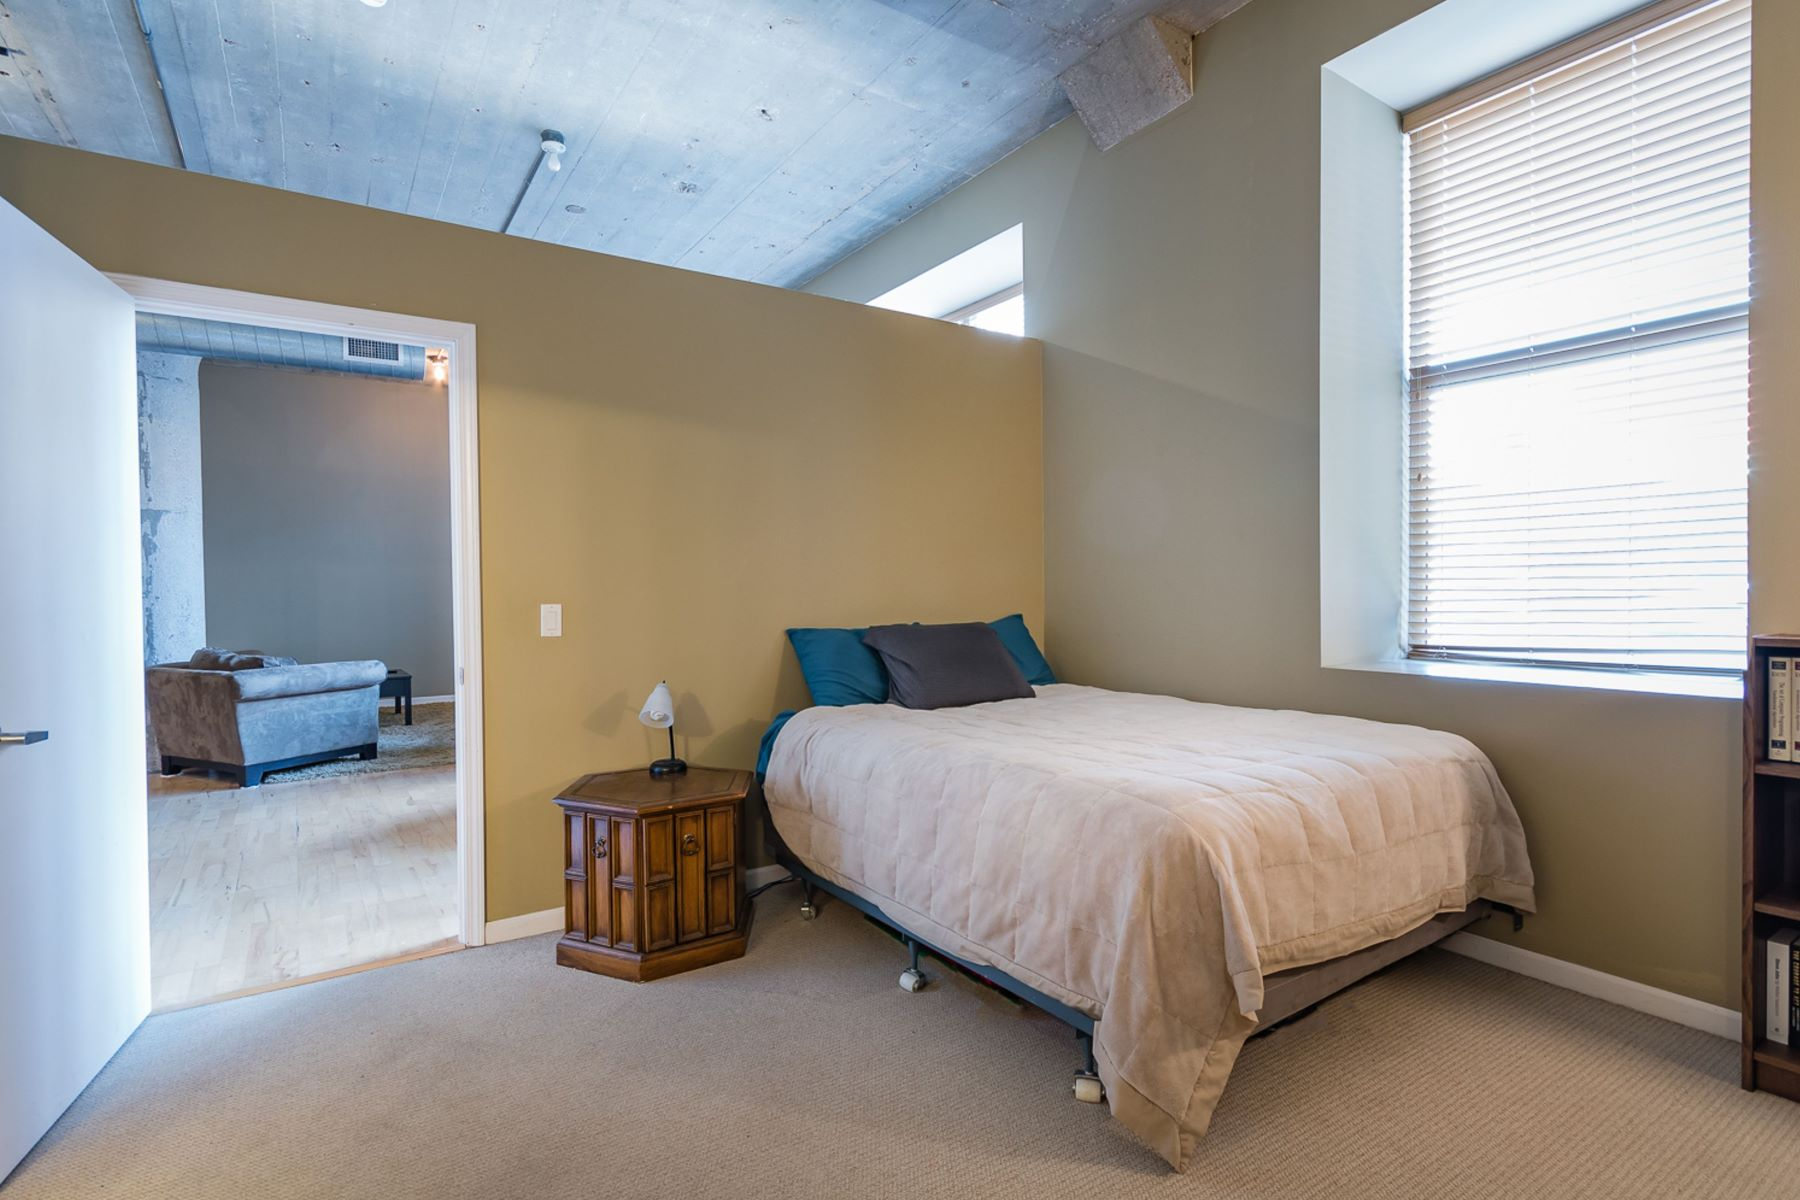 Additional photo for property listing at Luxury Living Downtown at the Annex Lofts 1511 Locust Street #305 St. Louis, Missouri 63103 United States